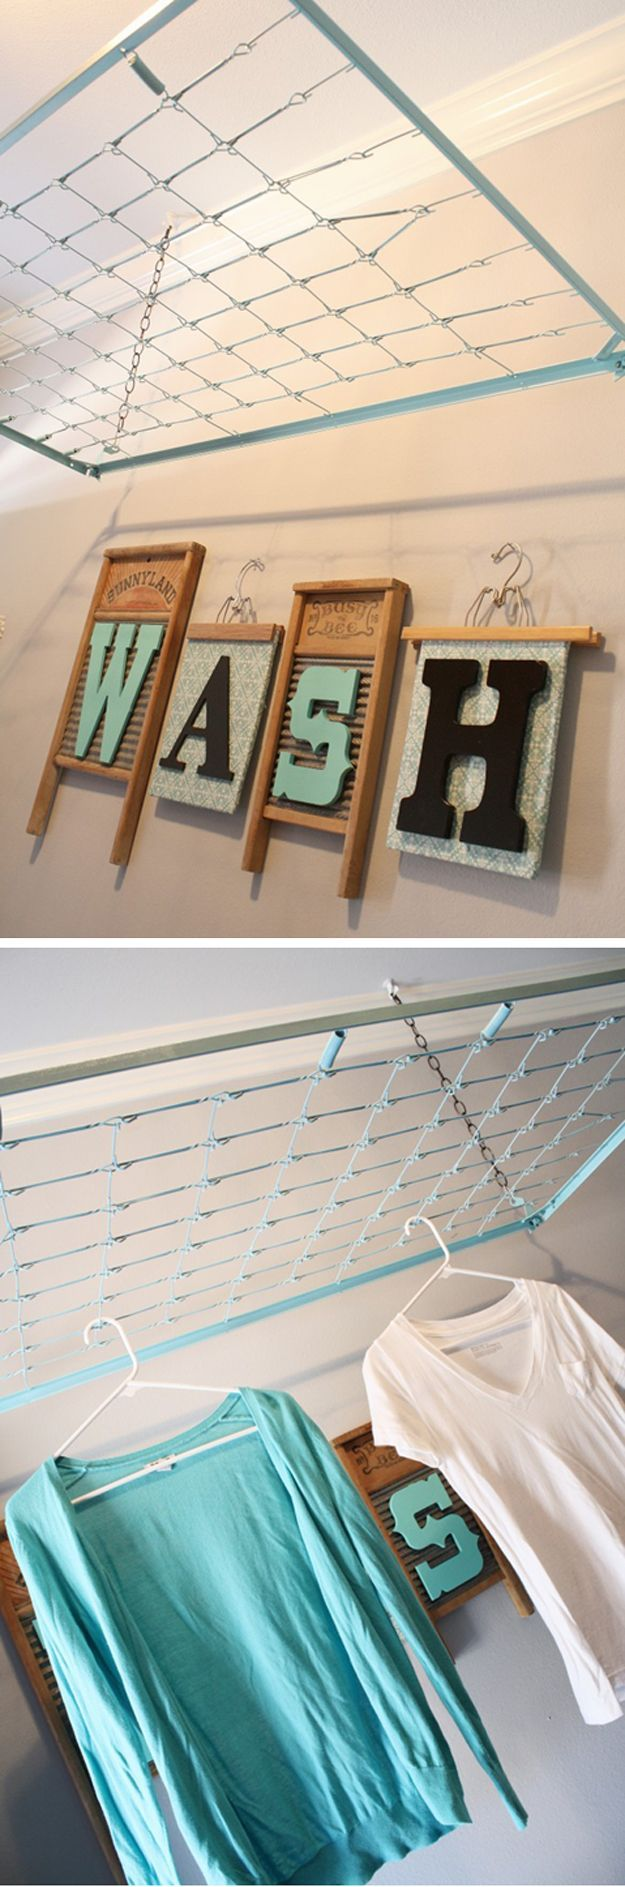 Laundry room ideas drying racks cute laundry rooms utilitarian spaces - Awesome Laundry Room Drying Rack Hacks By Diy Ready At Http Diyready